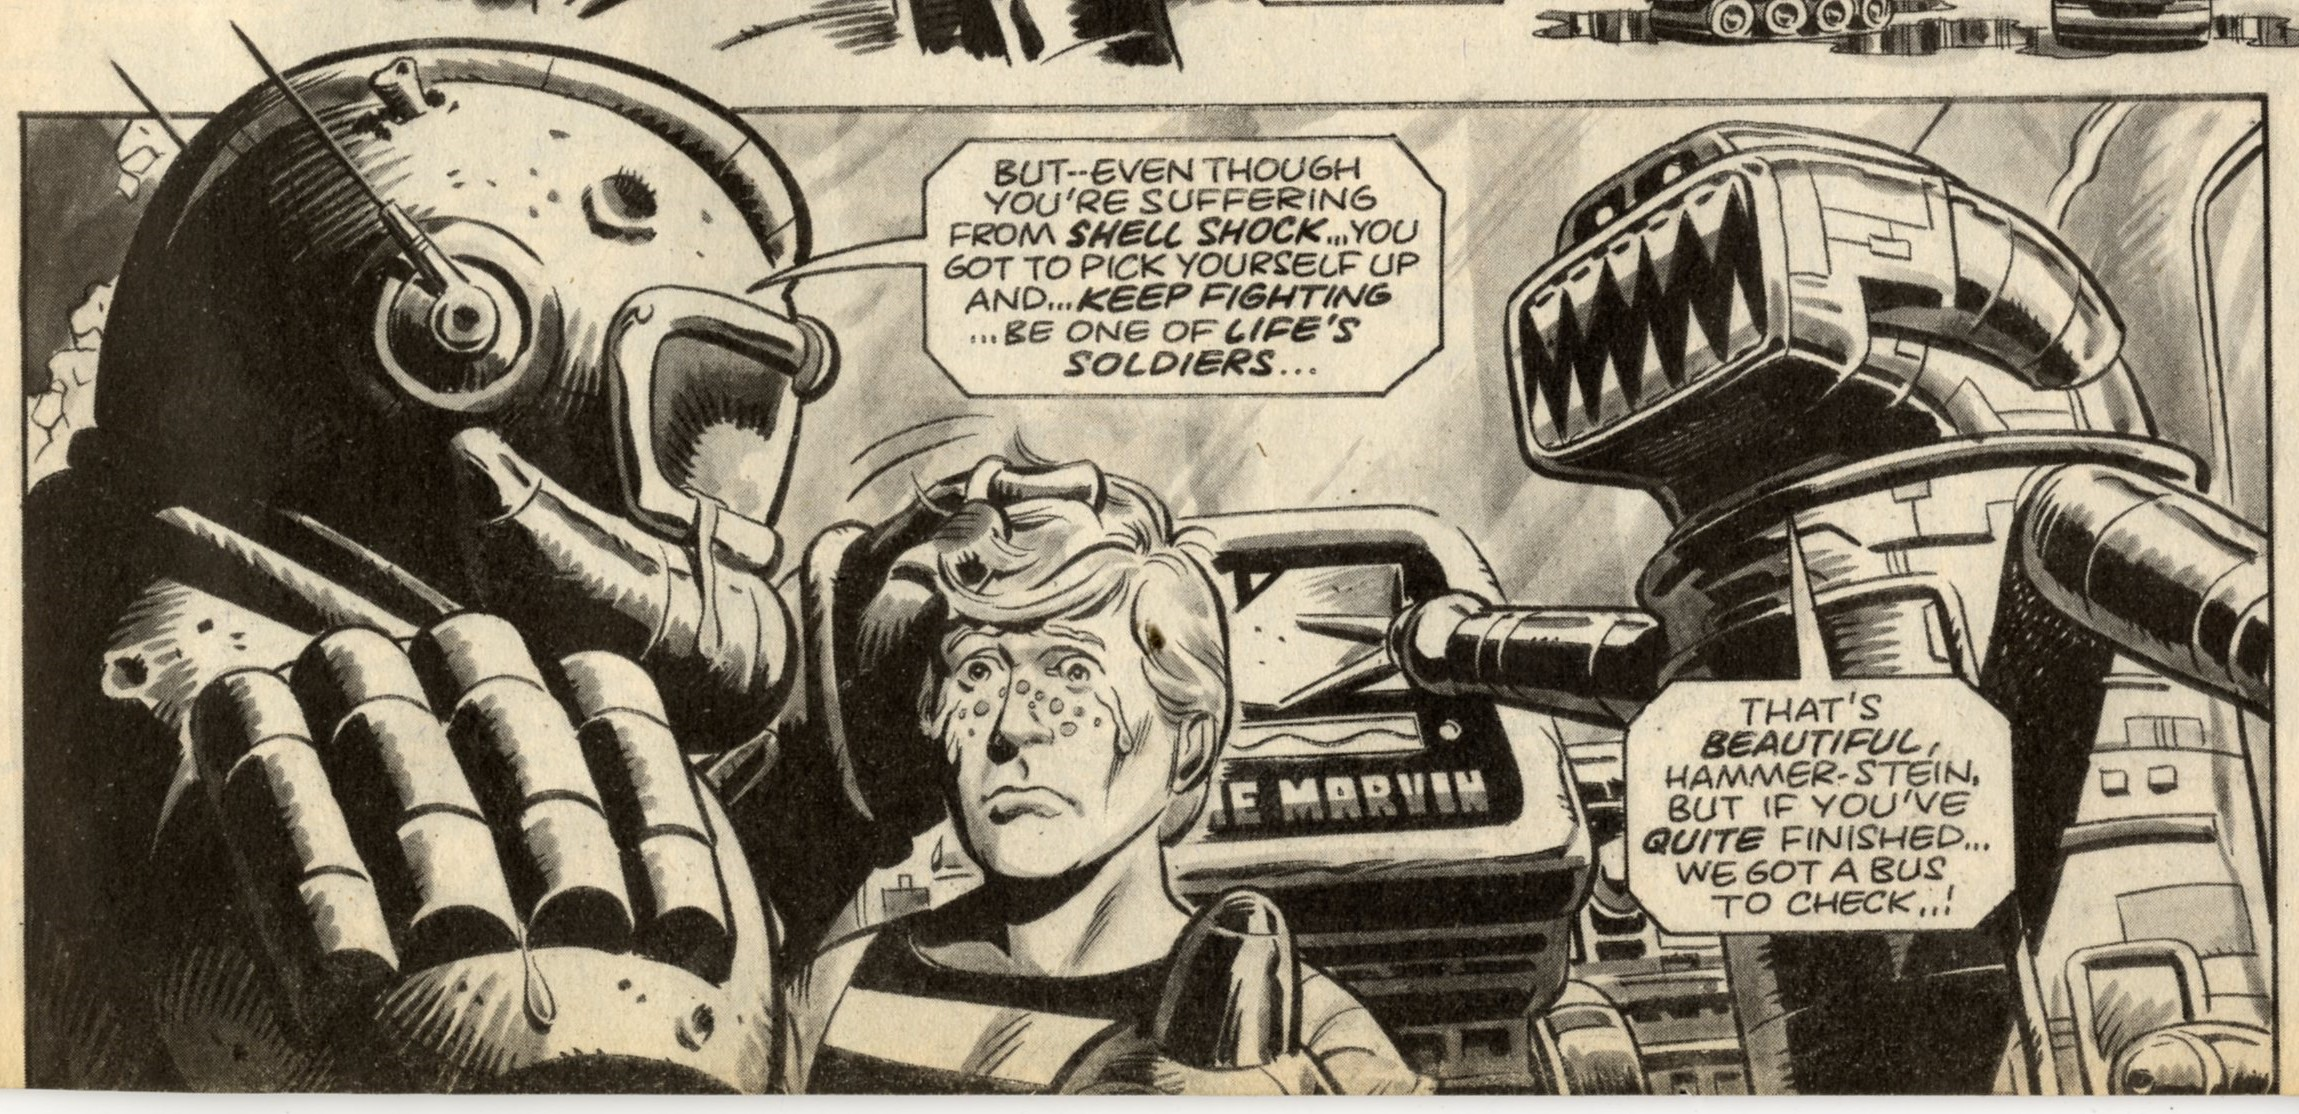 Ro-busters: Pat Mills (writer), Dave Gibbons (artist)